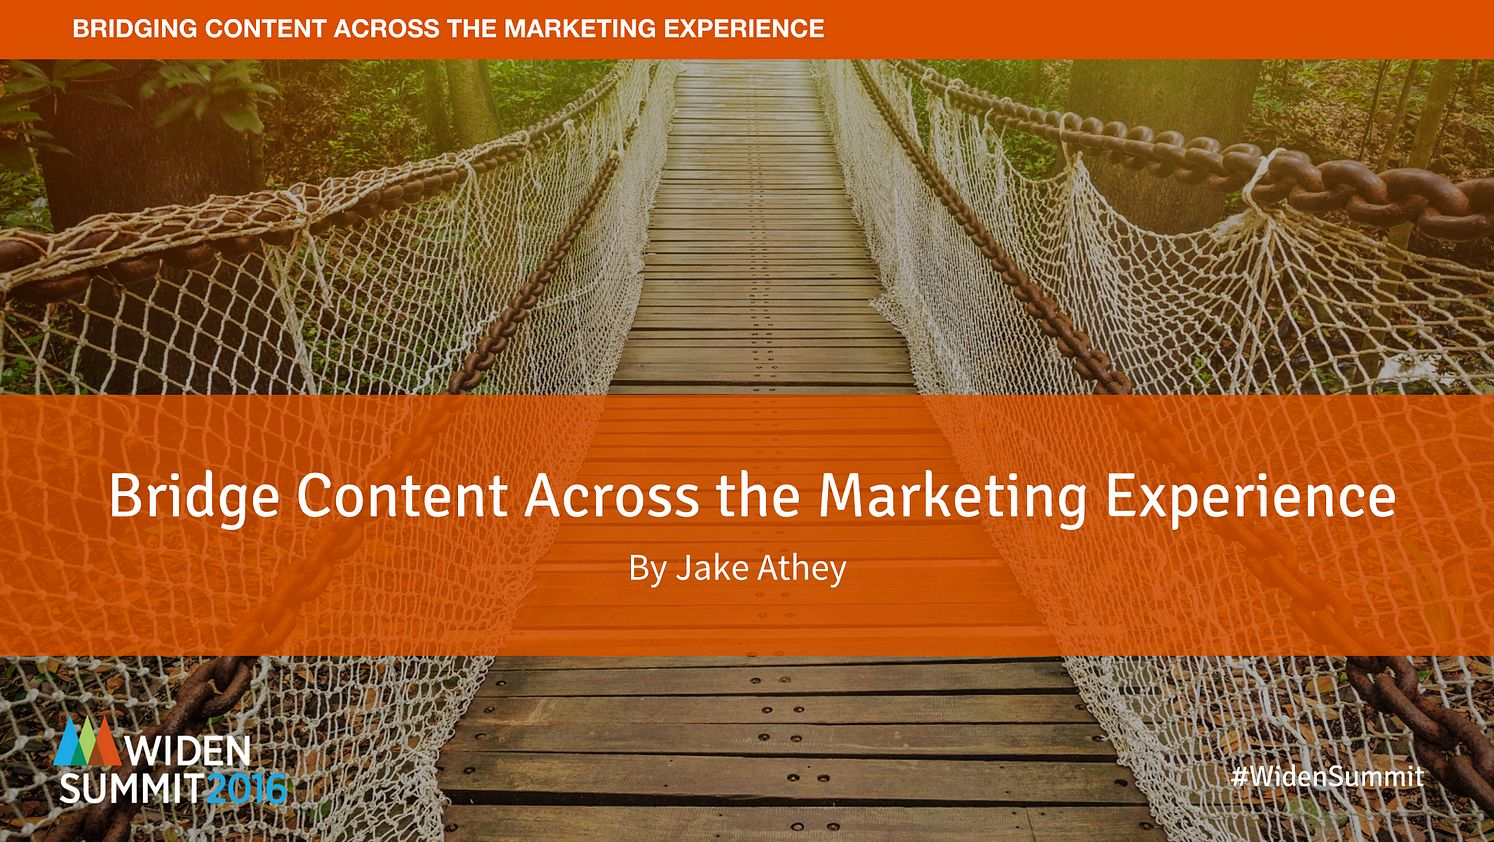 Visual Content & the Marketing Experience